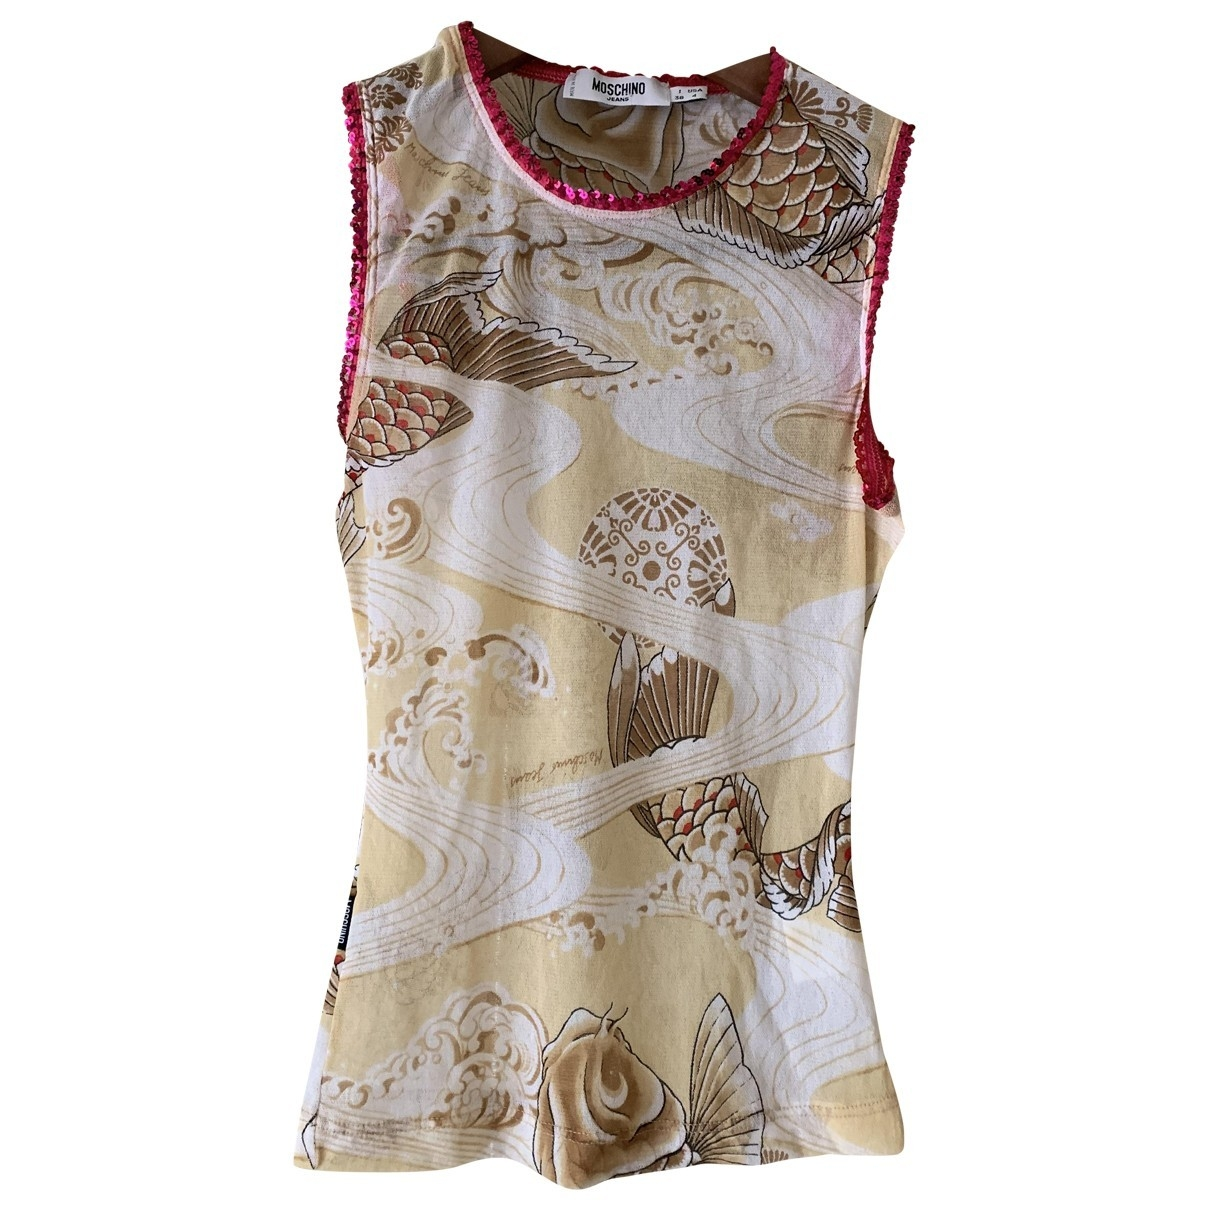 Moschino Cheap And Chic \N Beige  top for Women 38 IT